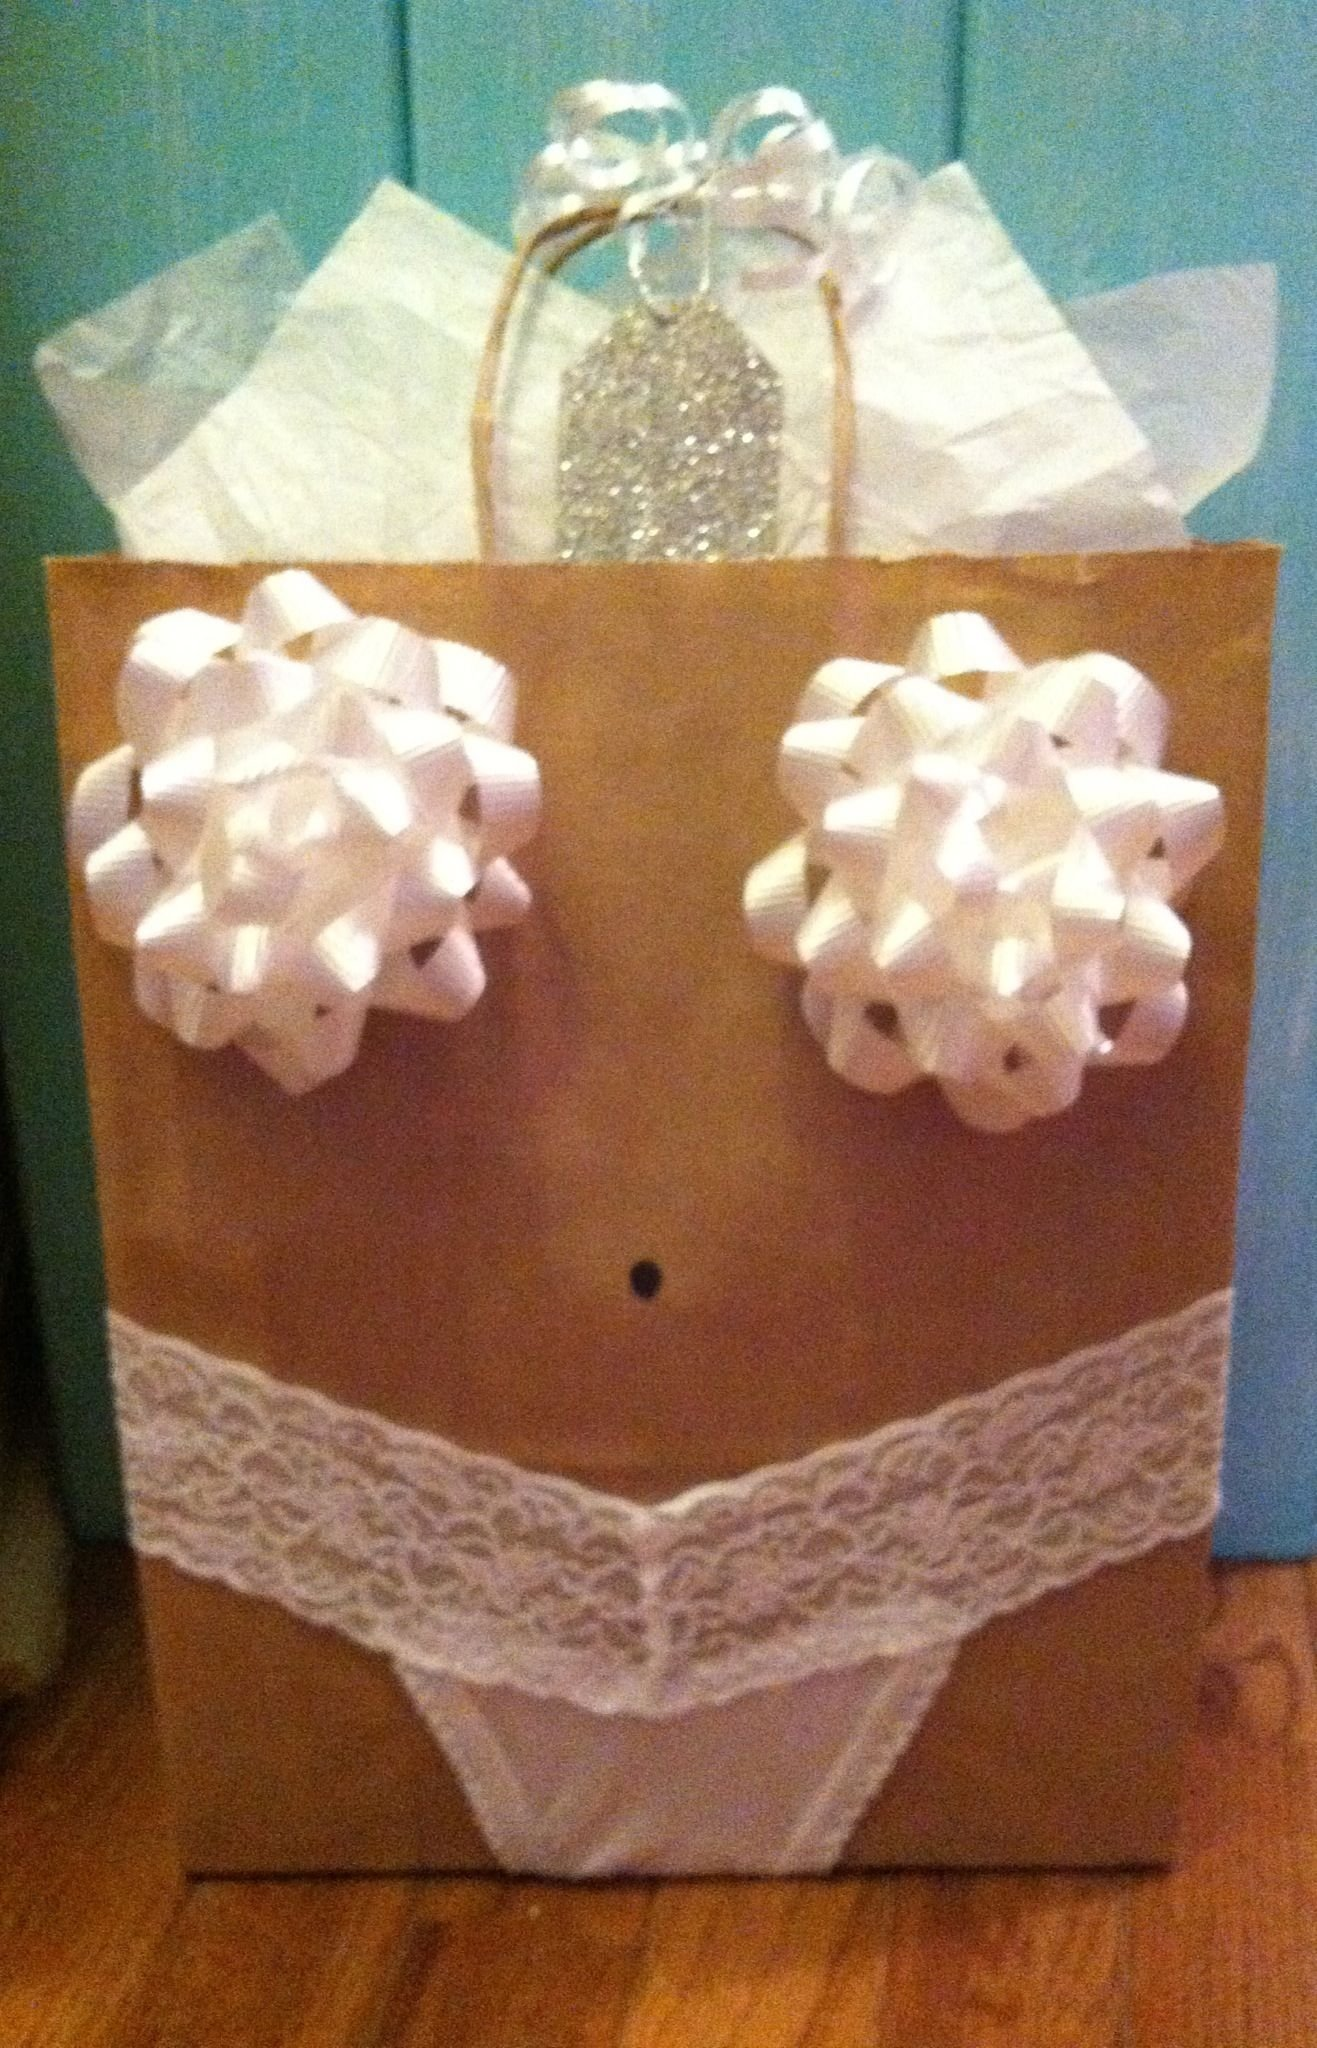 lingerie shower gift wrap idea! next person to get married is